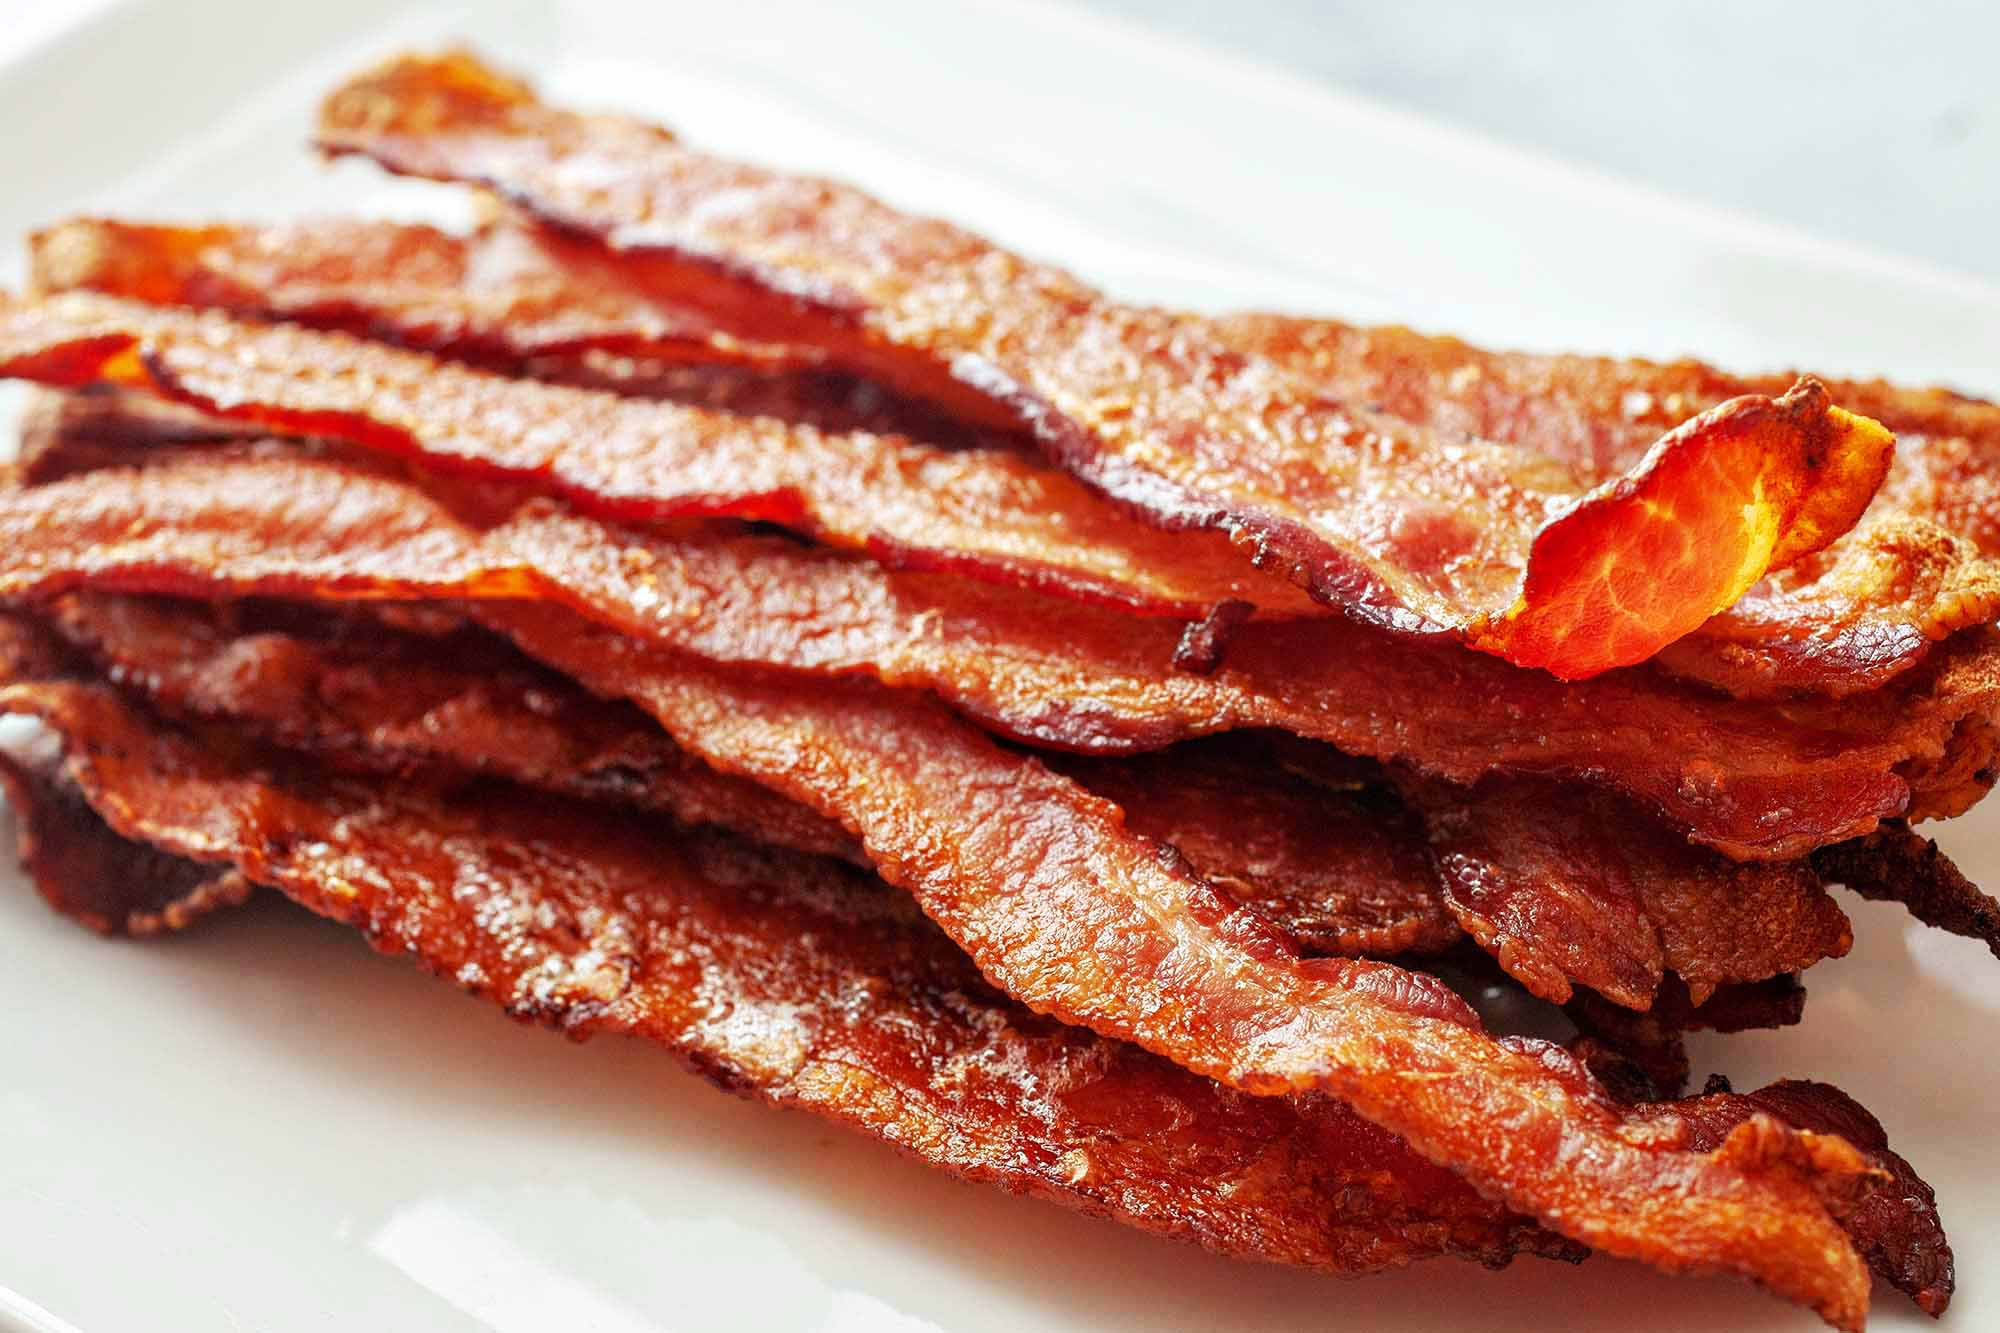 How To Bake Bacon in the Oven - pile of crispy browned bacon